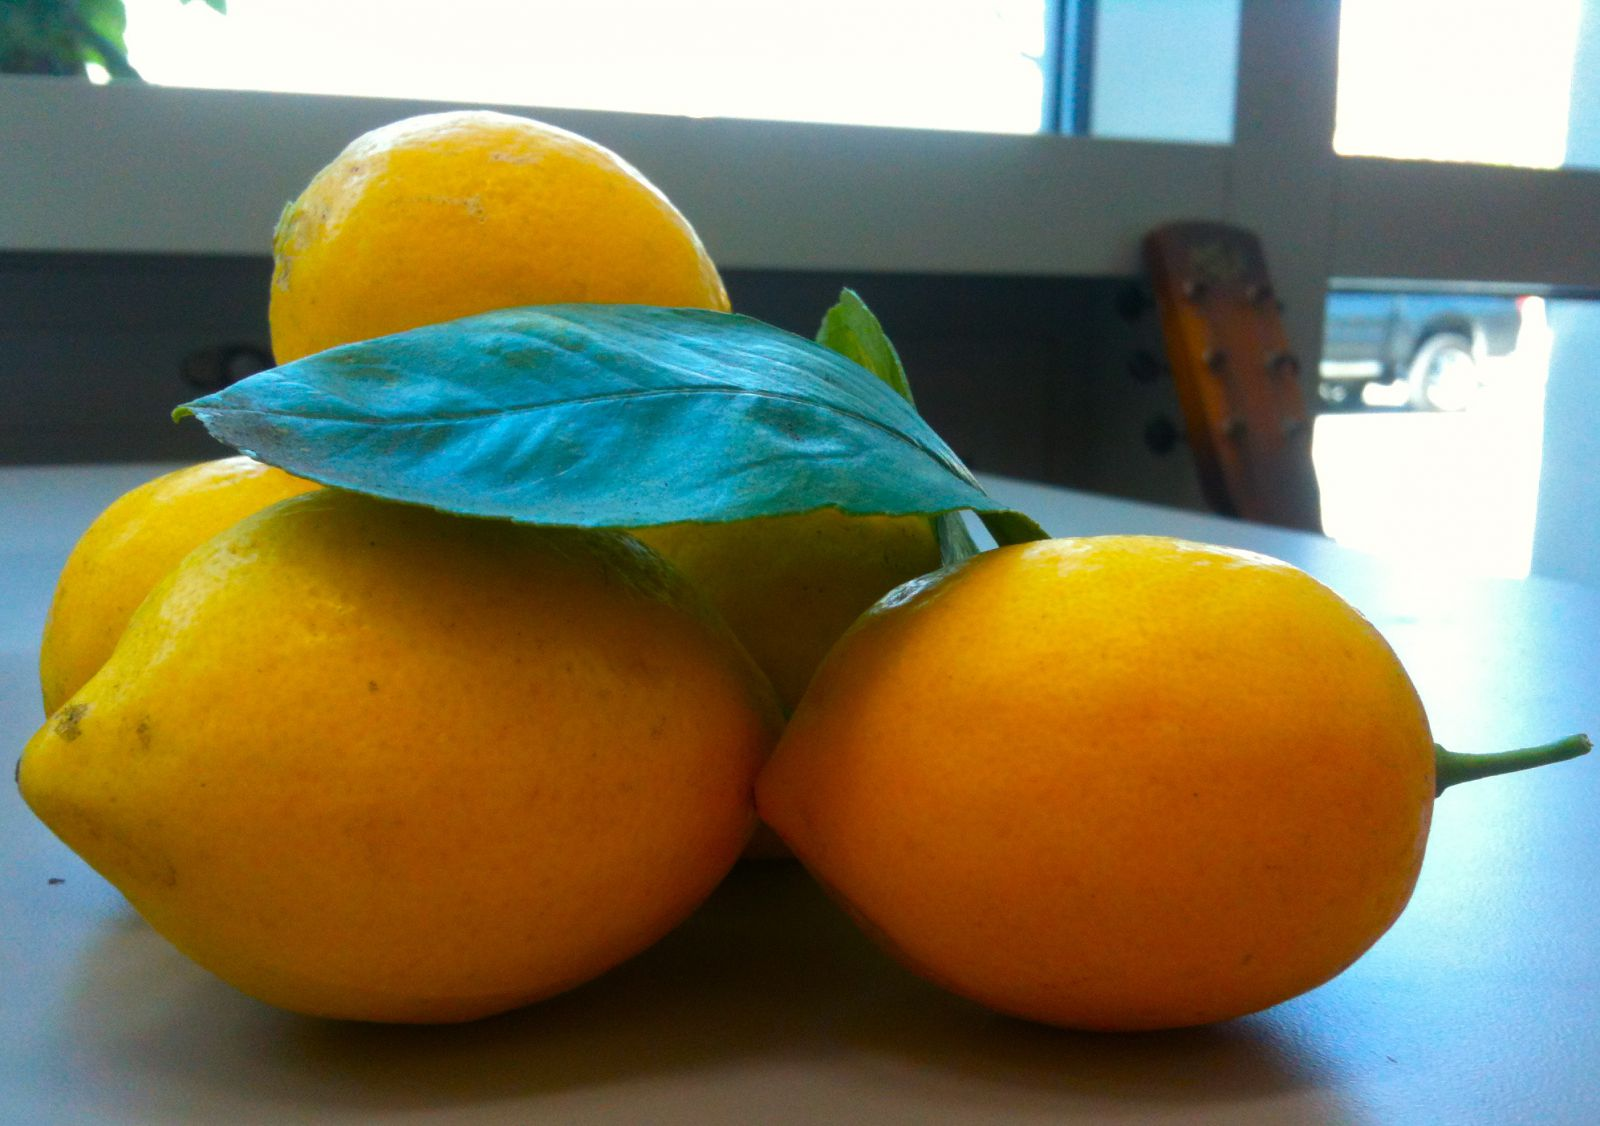 The day's bounty: lemons from down the road. Lemons and green tea are a powerful vice.